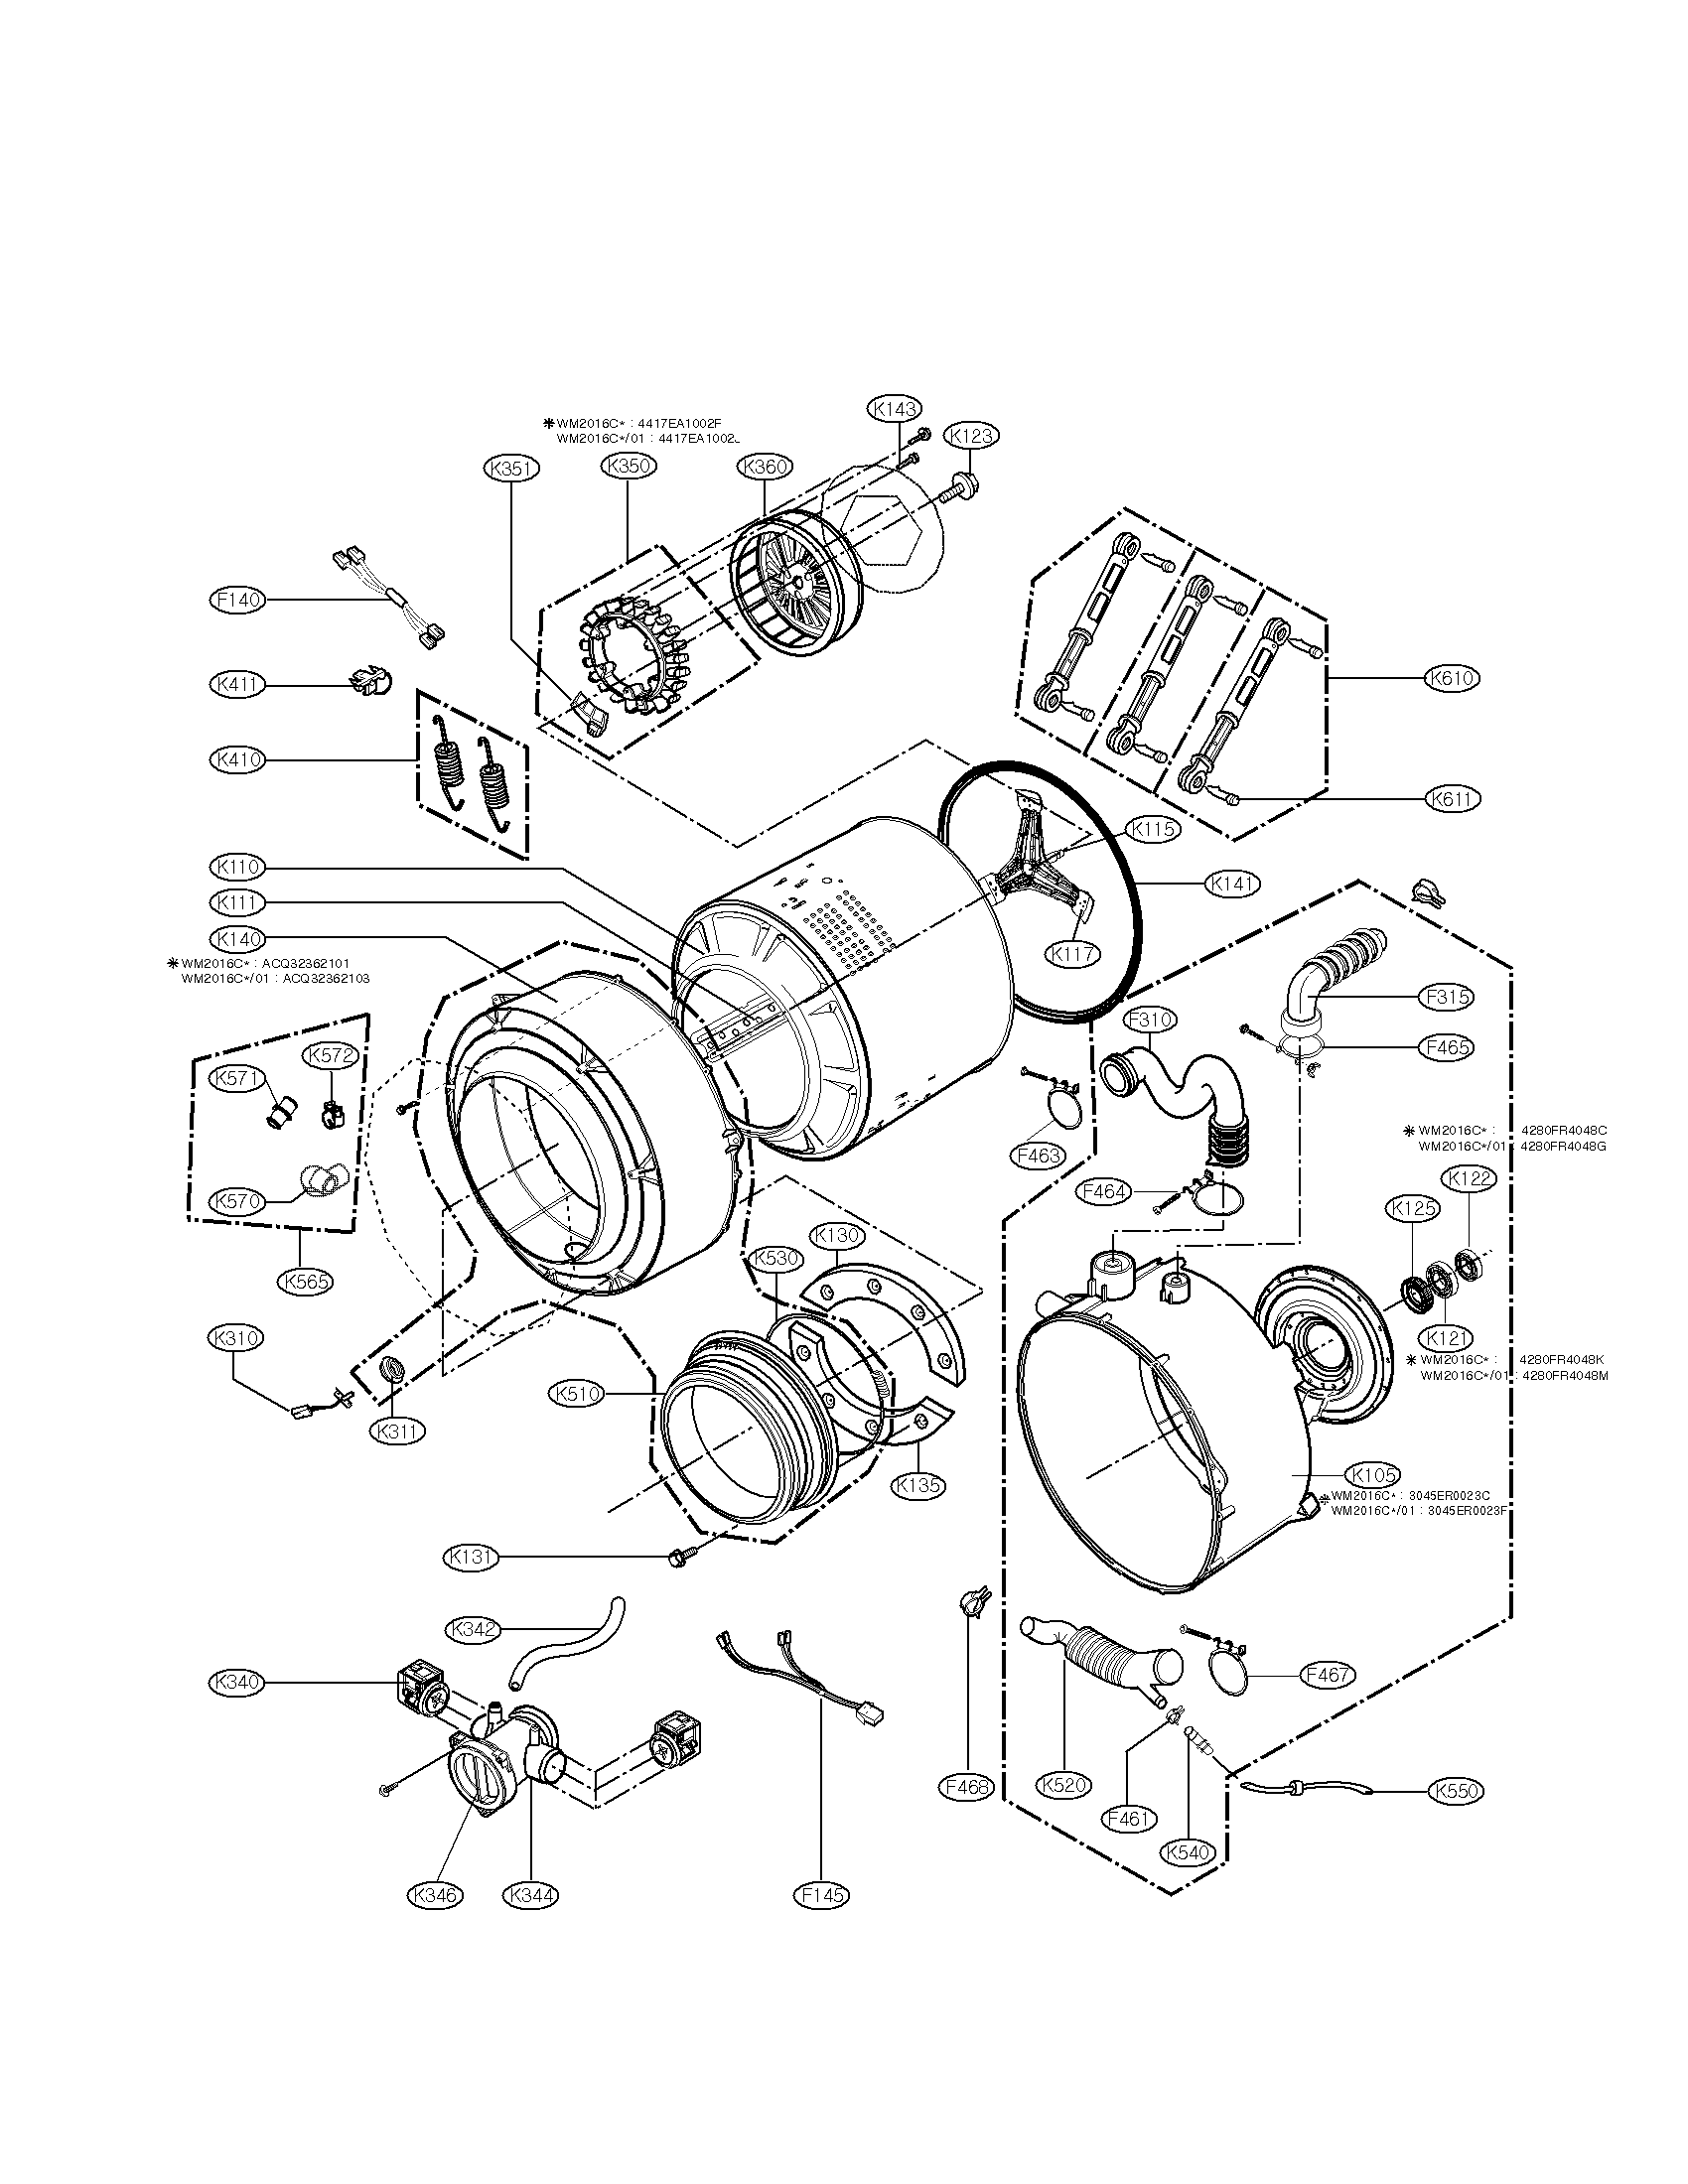 lg wm2016cw washer leaking from rear of motor  stator area